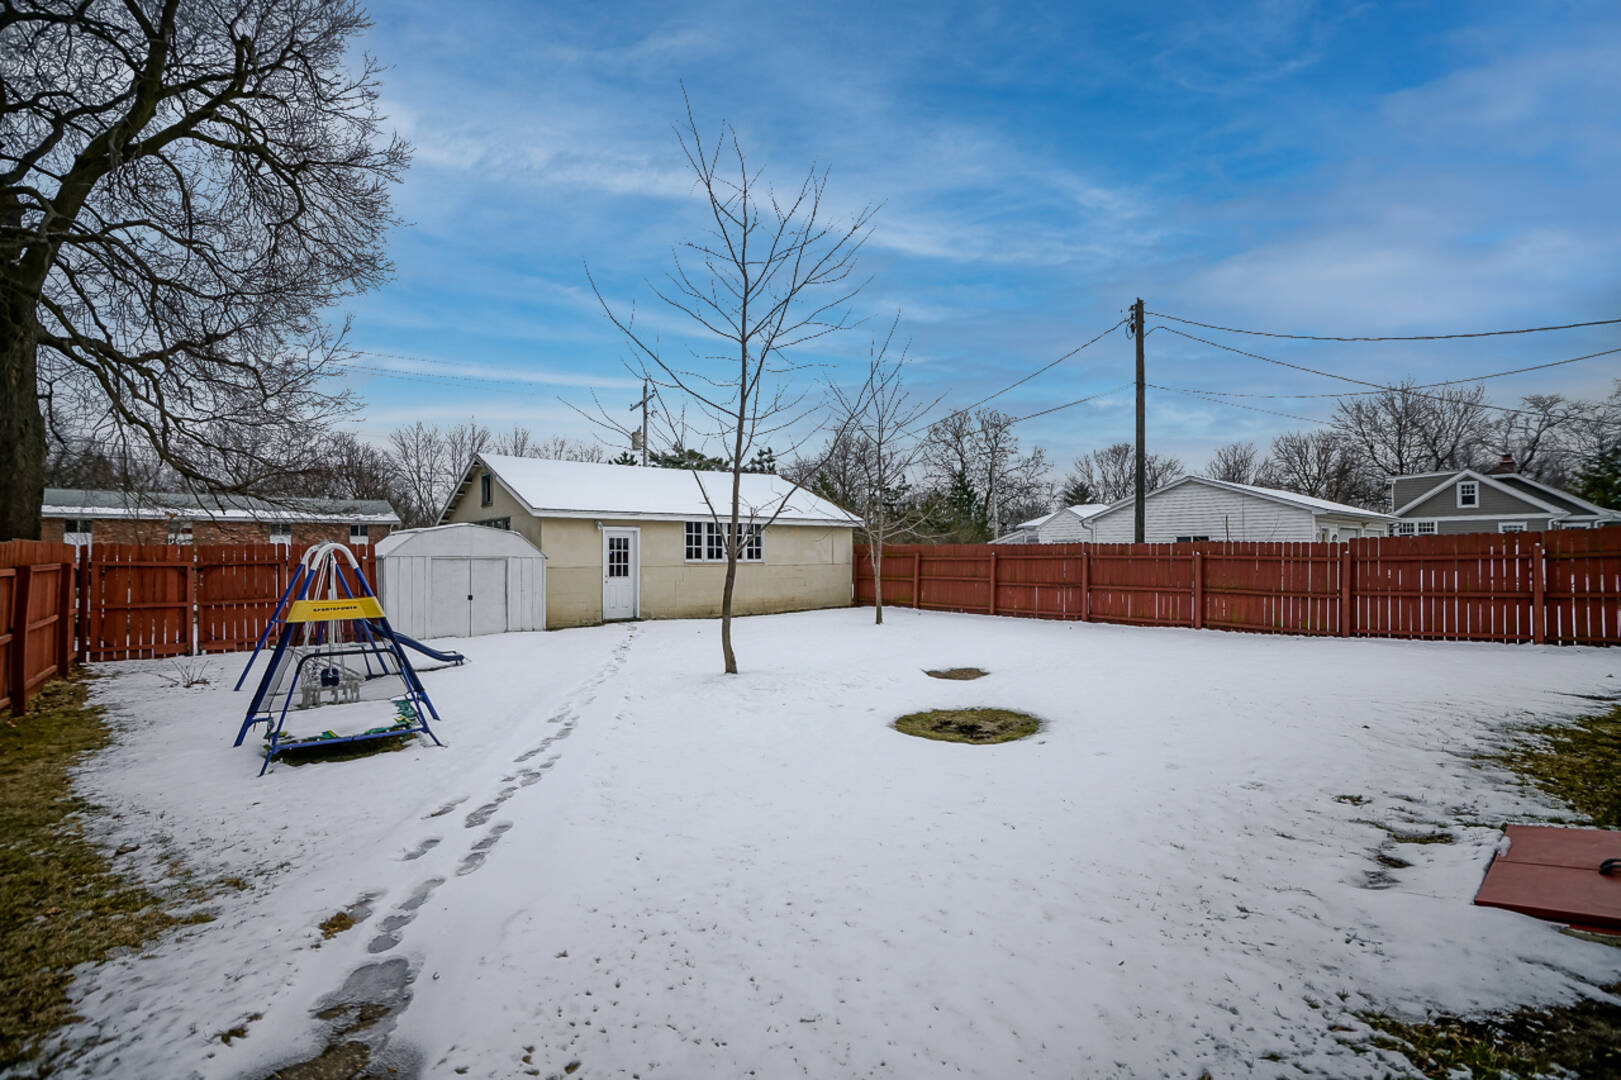 518 N 2nd St Chillicothe, IL 61523